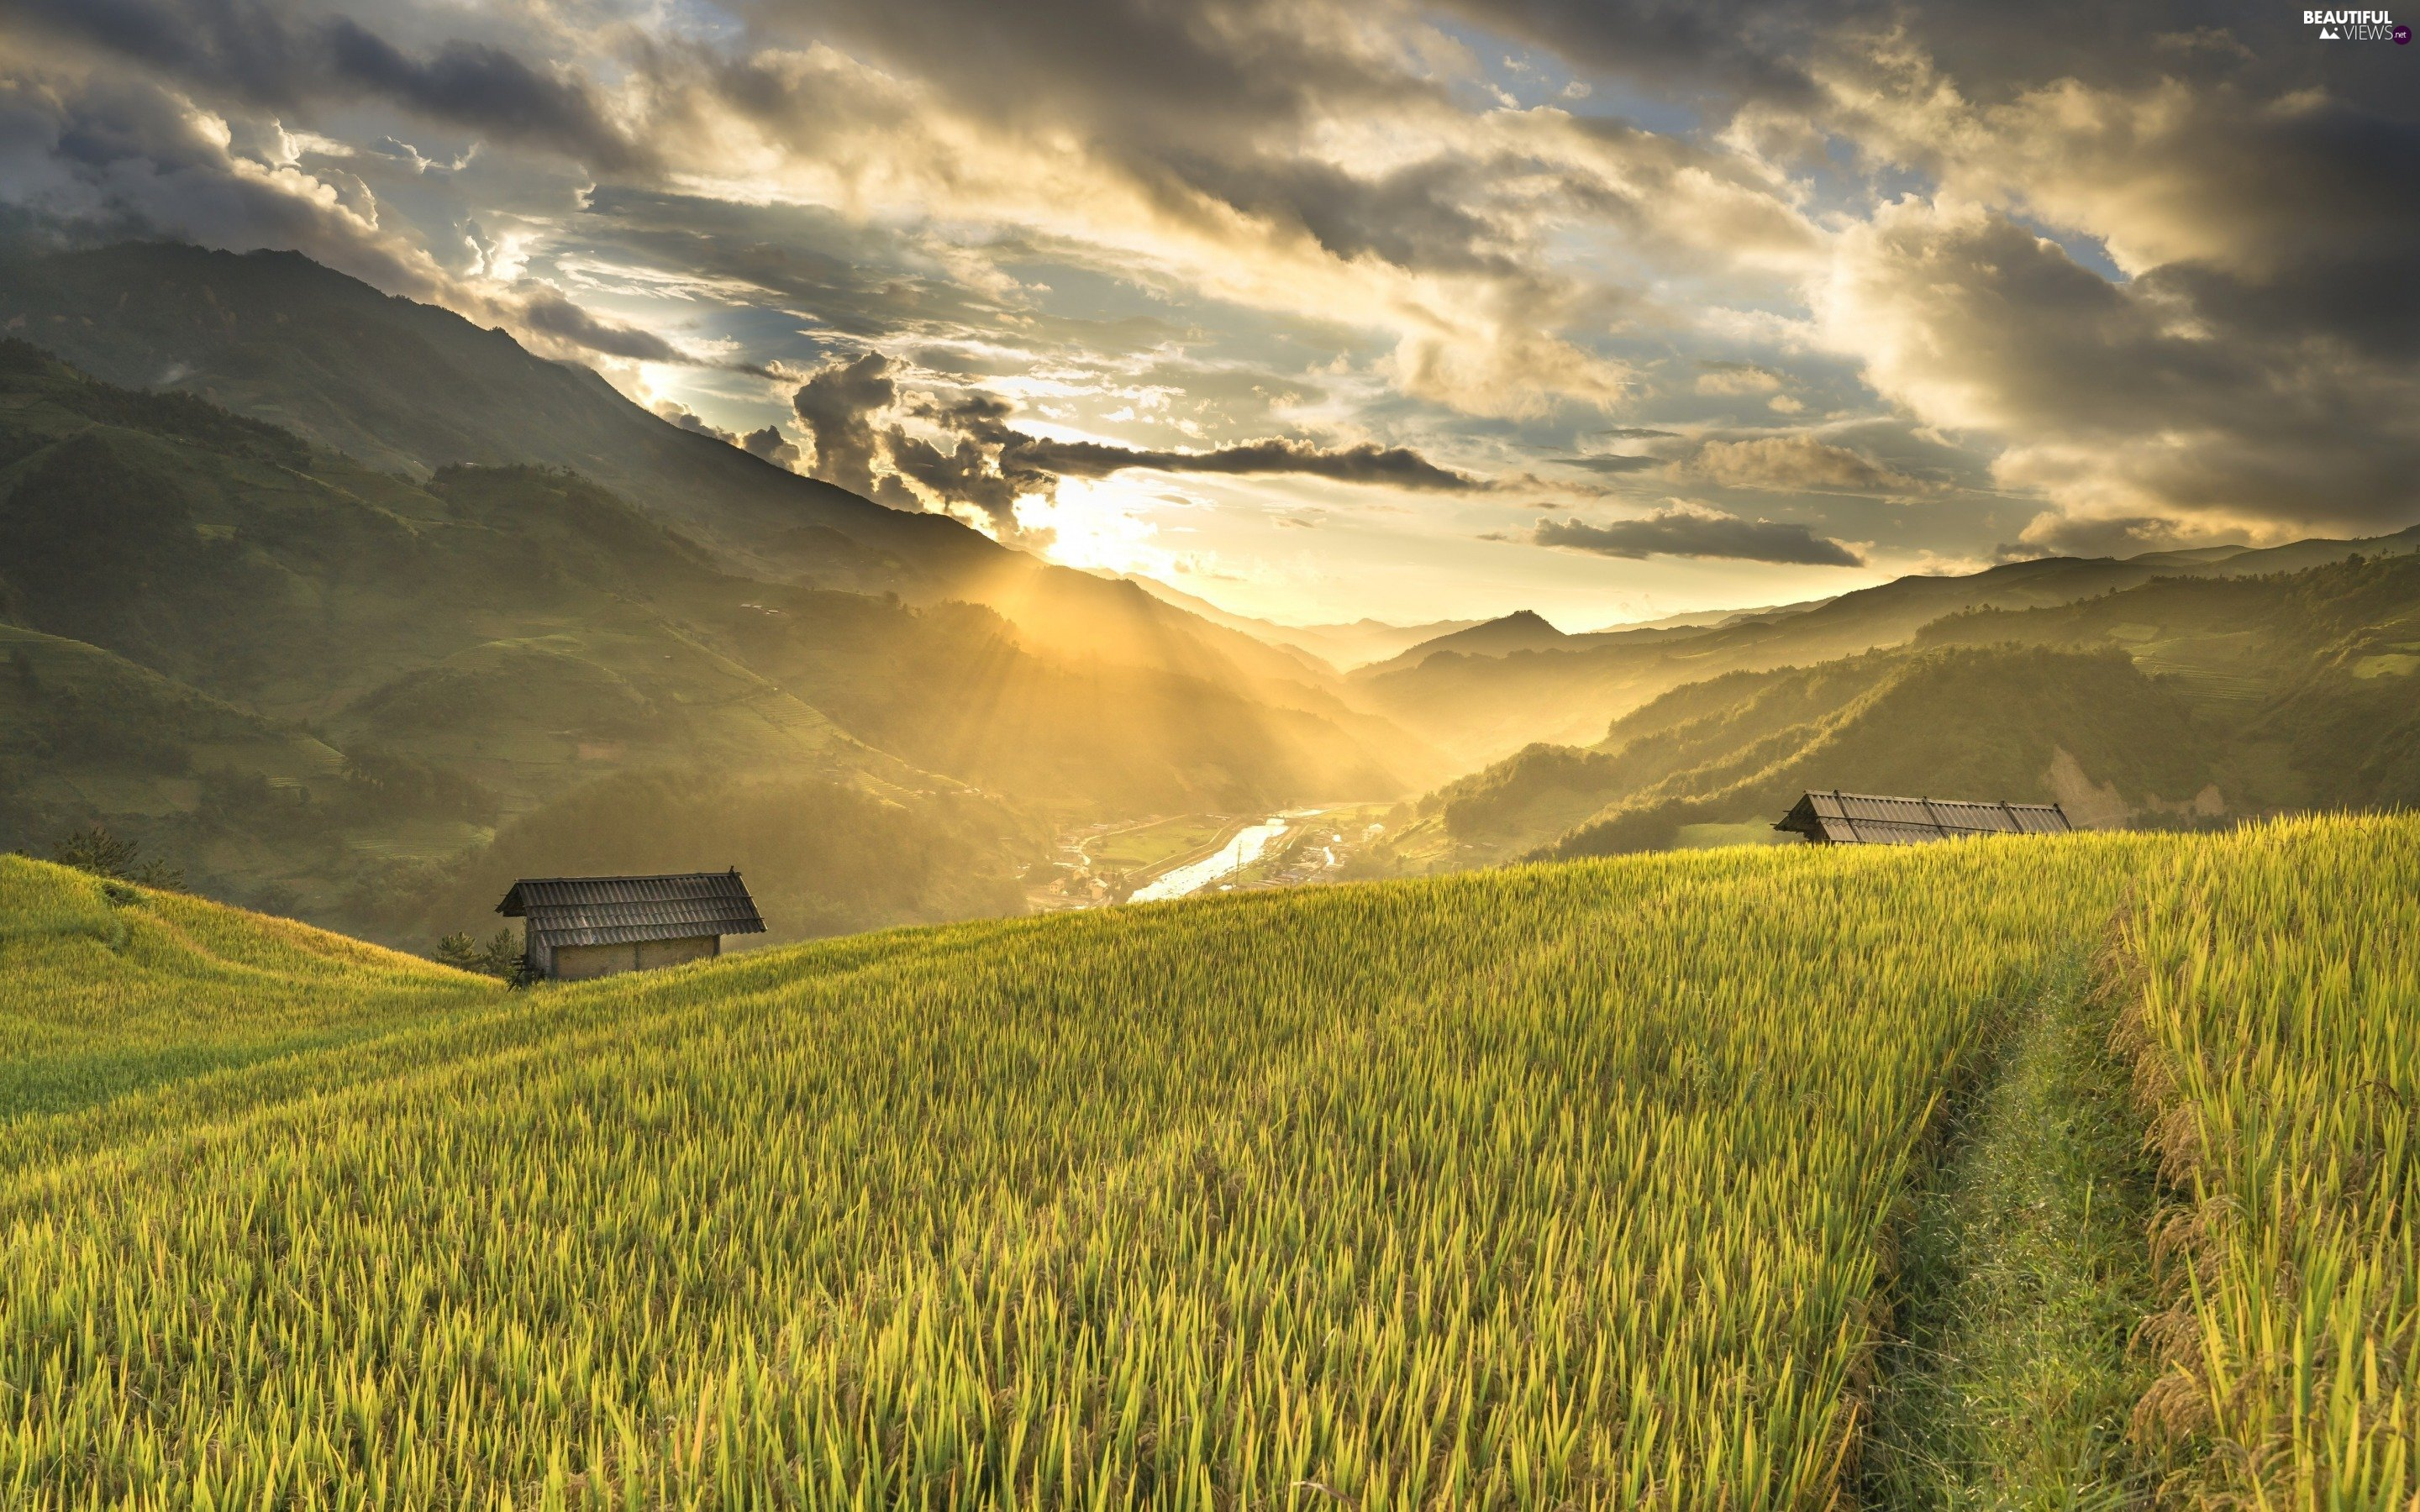 Field, cultivated, Mountains, clouds, Sunrise